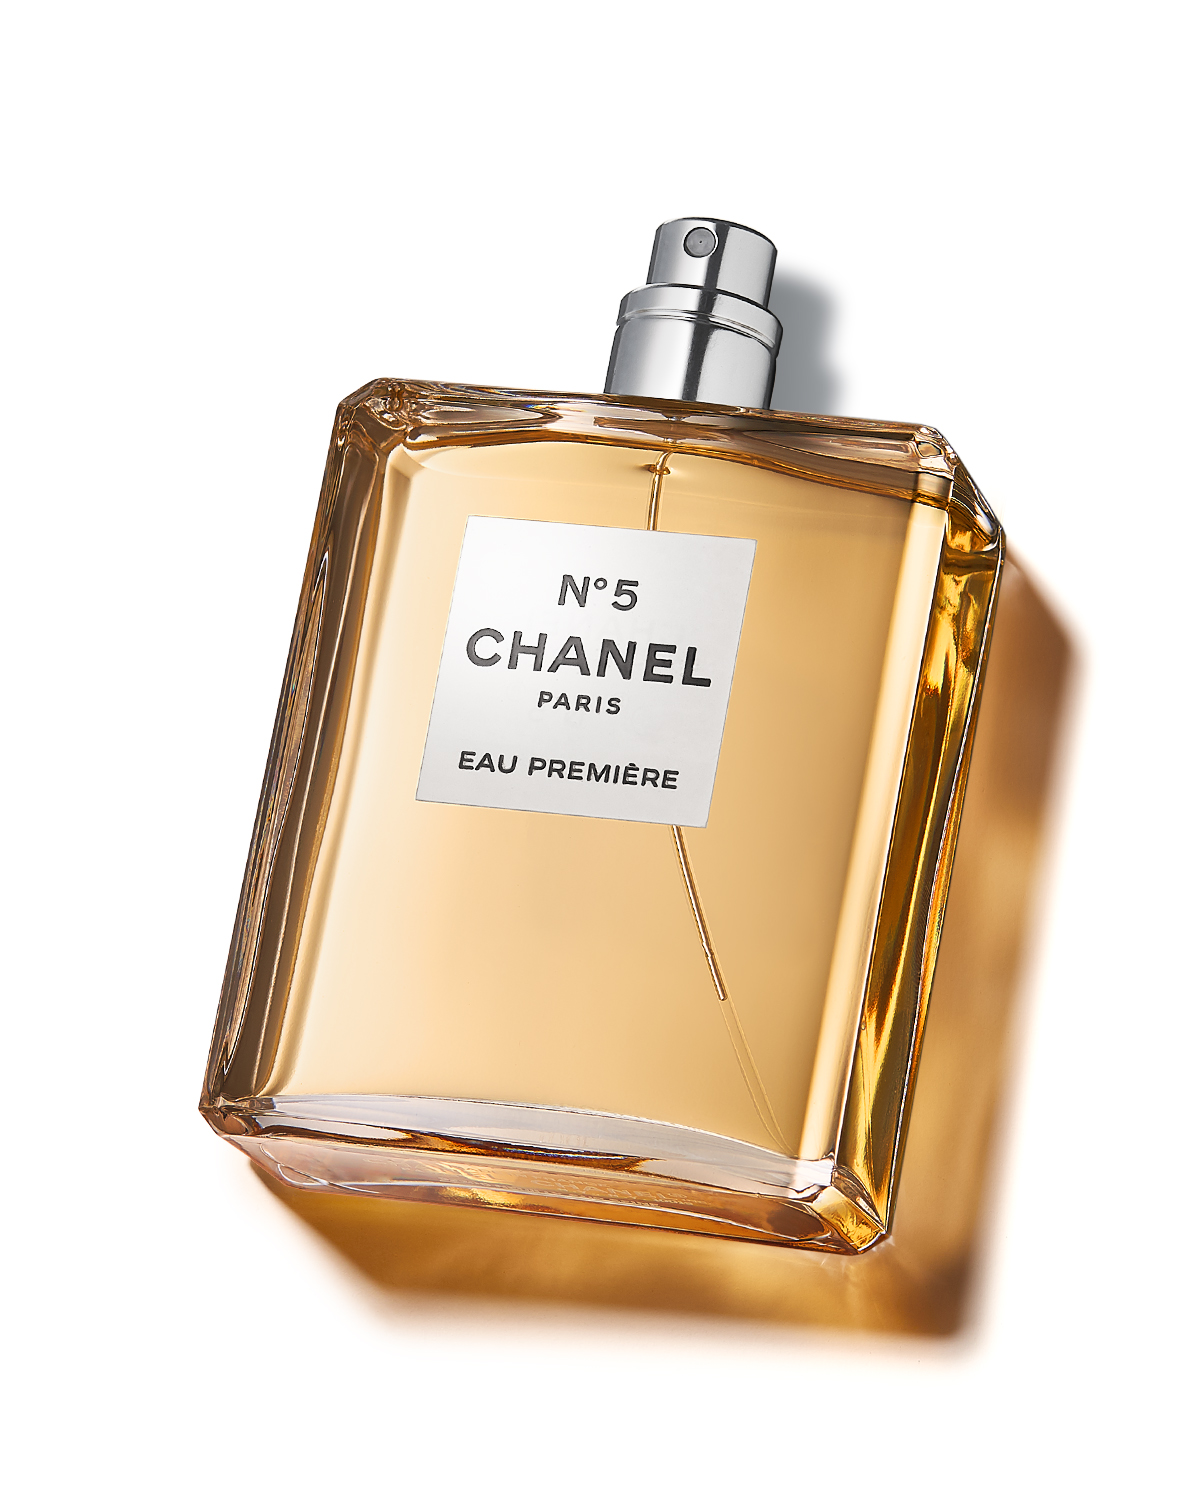 lauren nakao winn, photography, nyc, product photography, still, still life, chanel, chanel no. 5, perfume, fragrance, chanel perfume